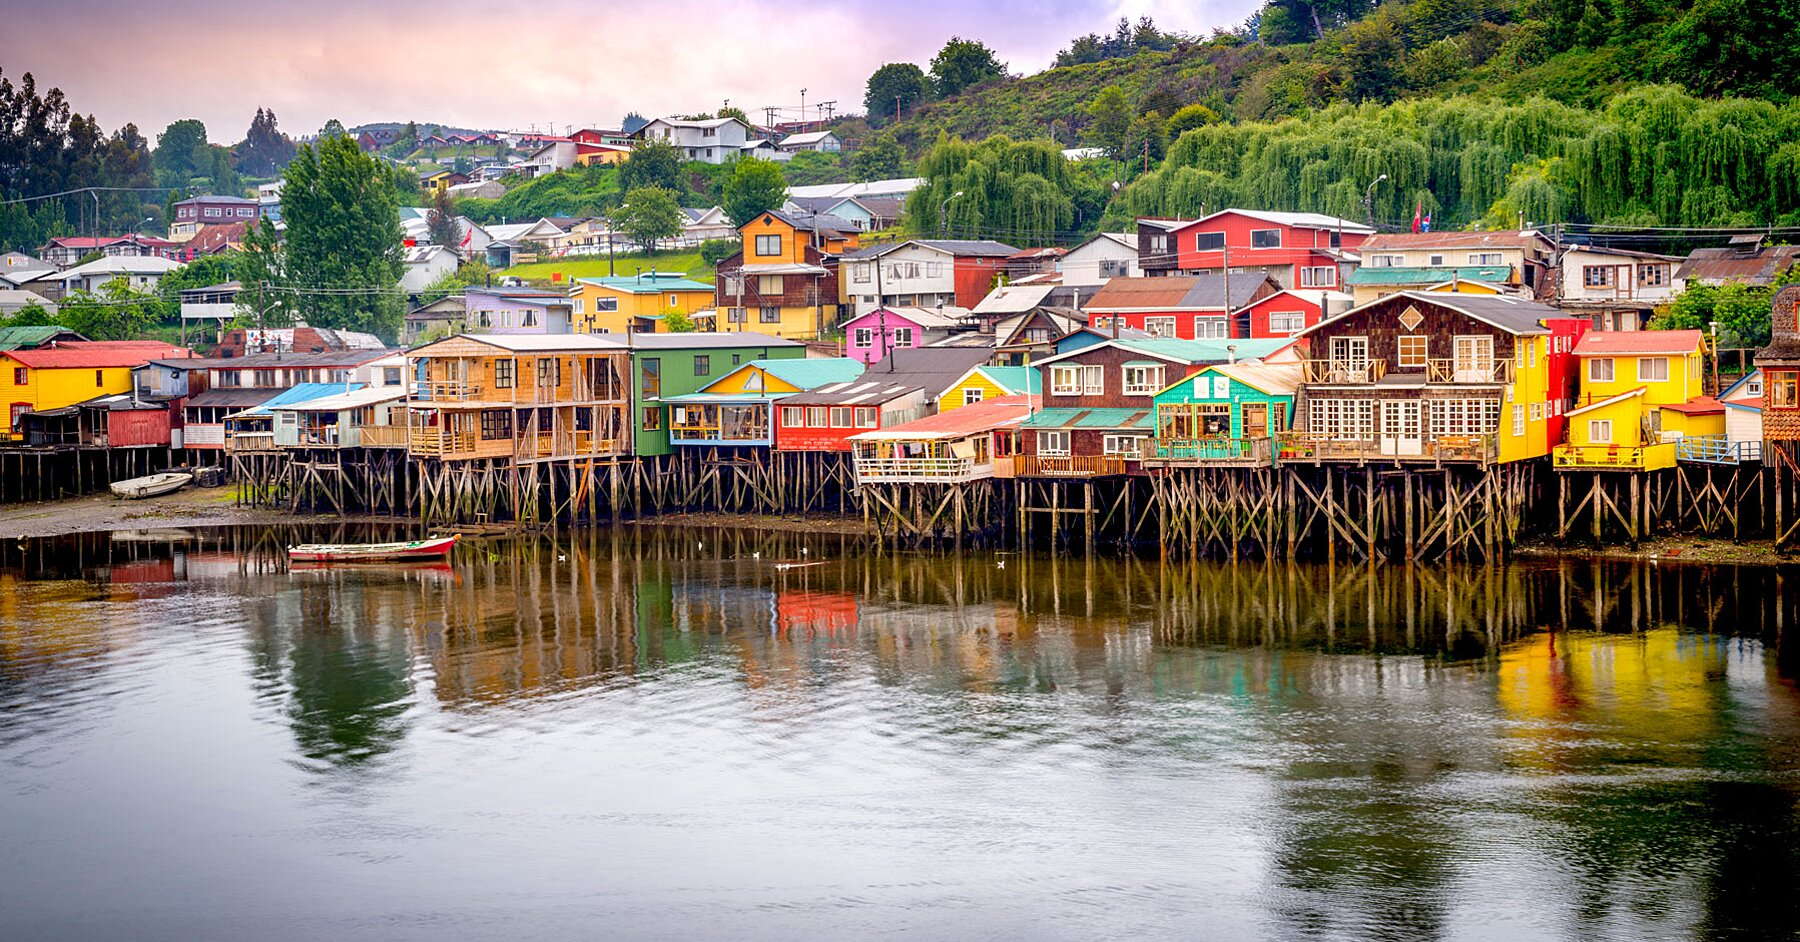 This Dreamy Chilean Island Is Home to Colorful Houses, Stunning Scenery, and the World's Smallest Deer